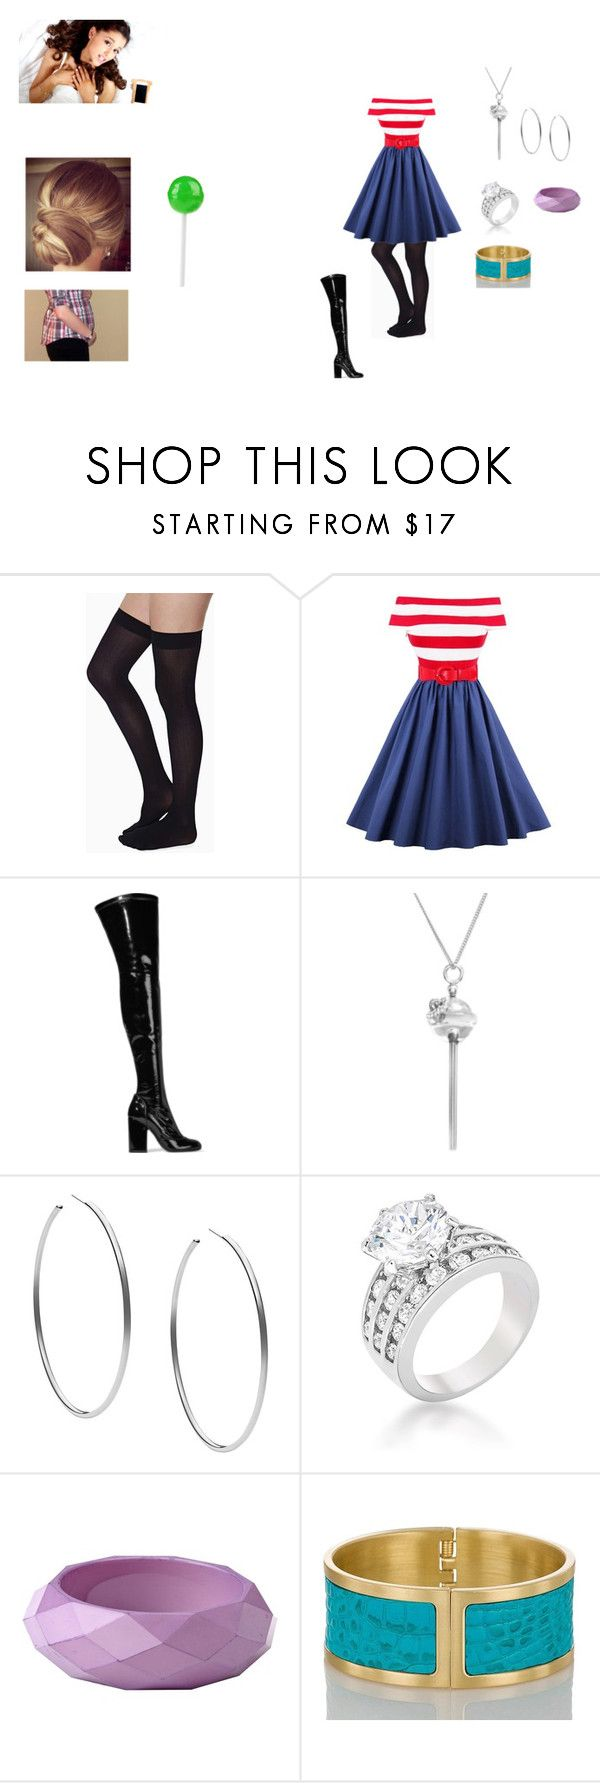 """Selena Alexandra Andrews"" by tayloranna-stone ❤ liked on Polyvore featuring Leg Avenue, Laurence Dacade, Simone I. Smith, Michael Kors, First People First, Brahmin and riverdale"